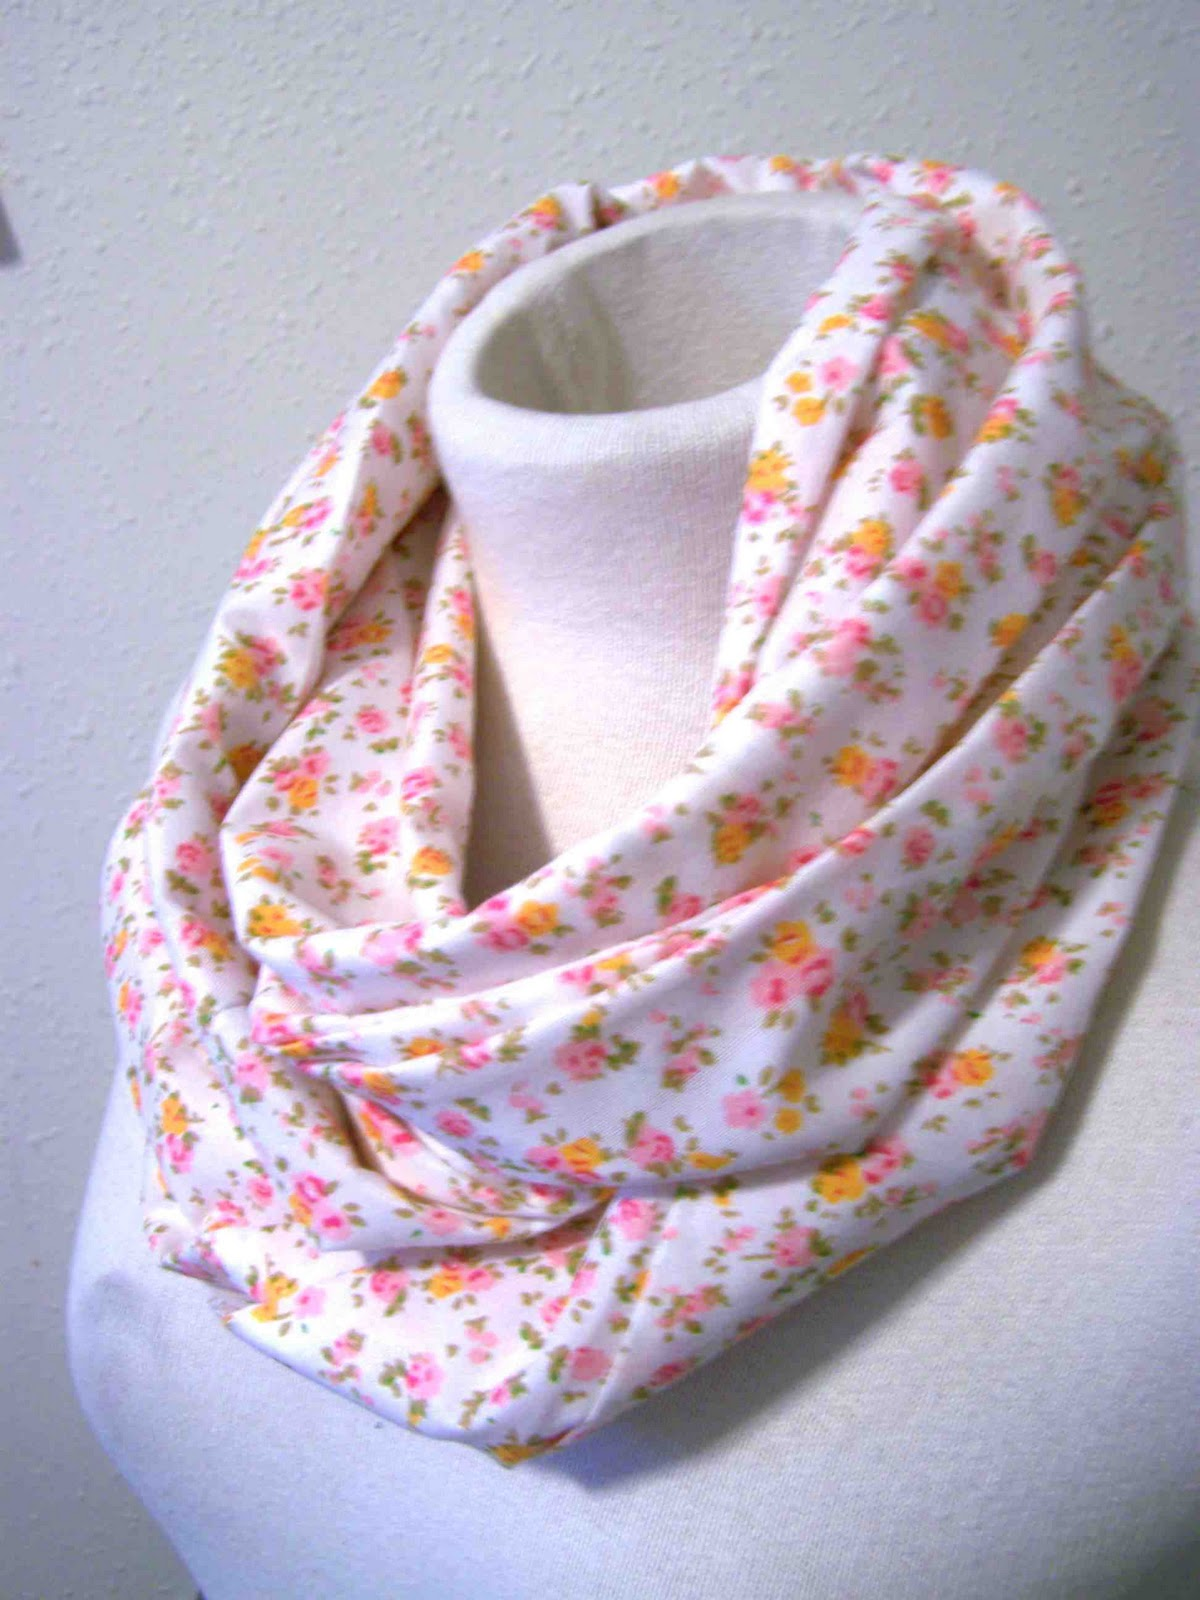 Product - Peach Couture Womens Fashion Bohemian Infinity Scarves Bird and Paisley Print. Product Image. Product - Marino's Cable Knit Infinity Scarves for Women, Winter Infinity Circle Scarf Wrap. Product Image. Price $ Product Title. Marino's Cable Knit Infinity Scarves for Women, Winter Infinity Circle Scarf Wrap. See Details.